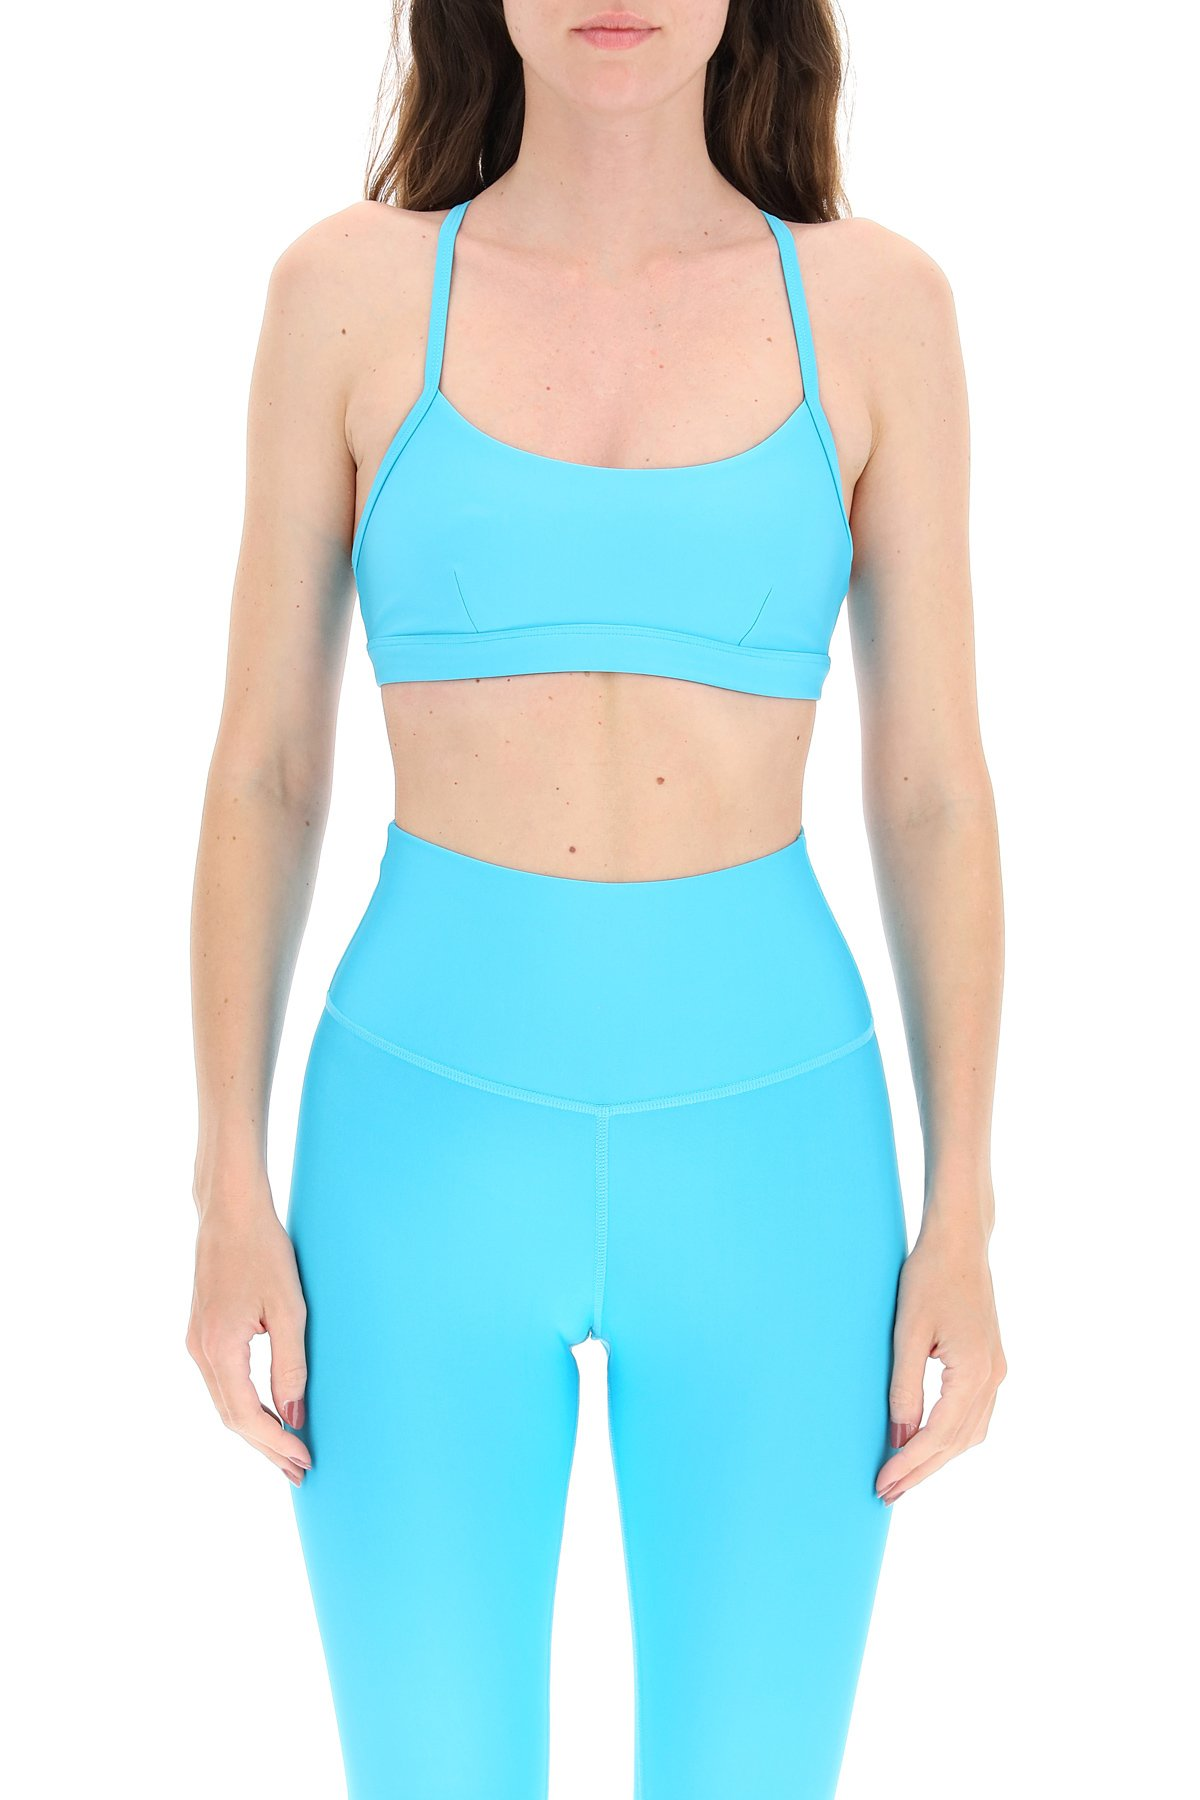 Alo yoga top sportivo airlift intrigue